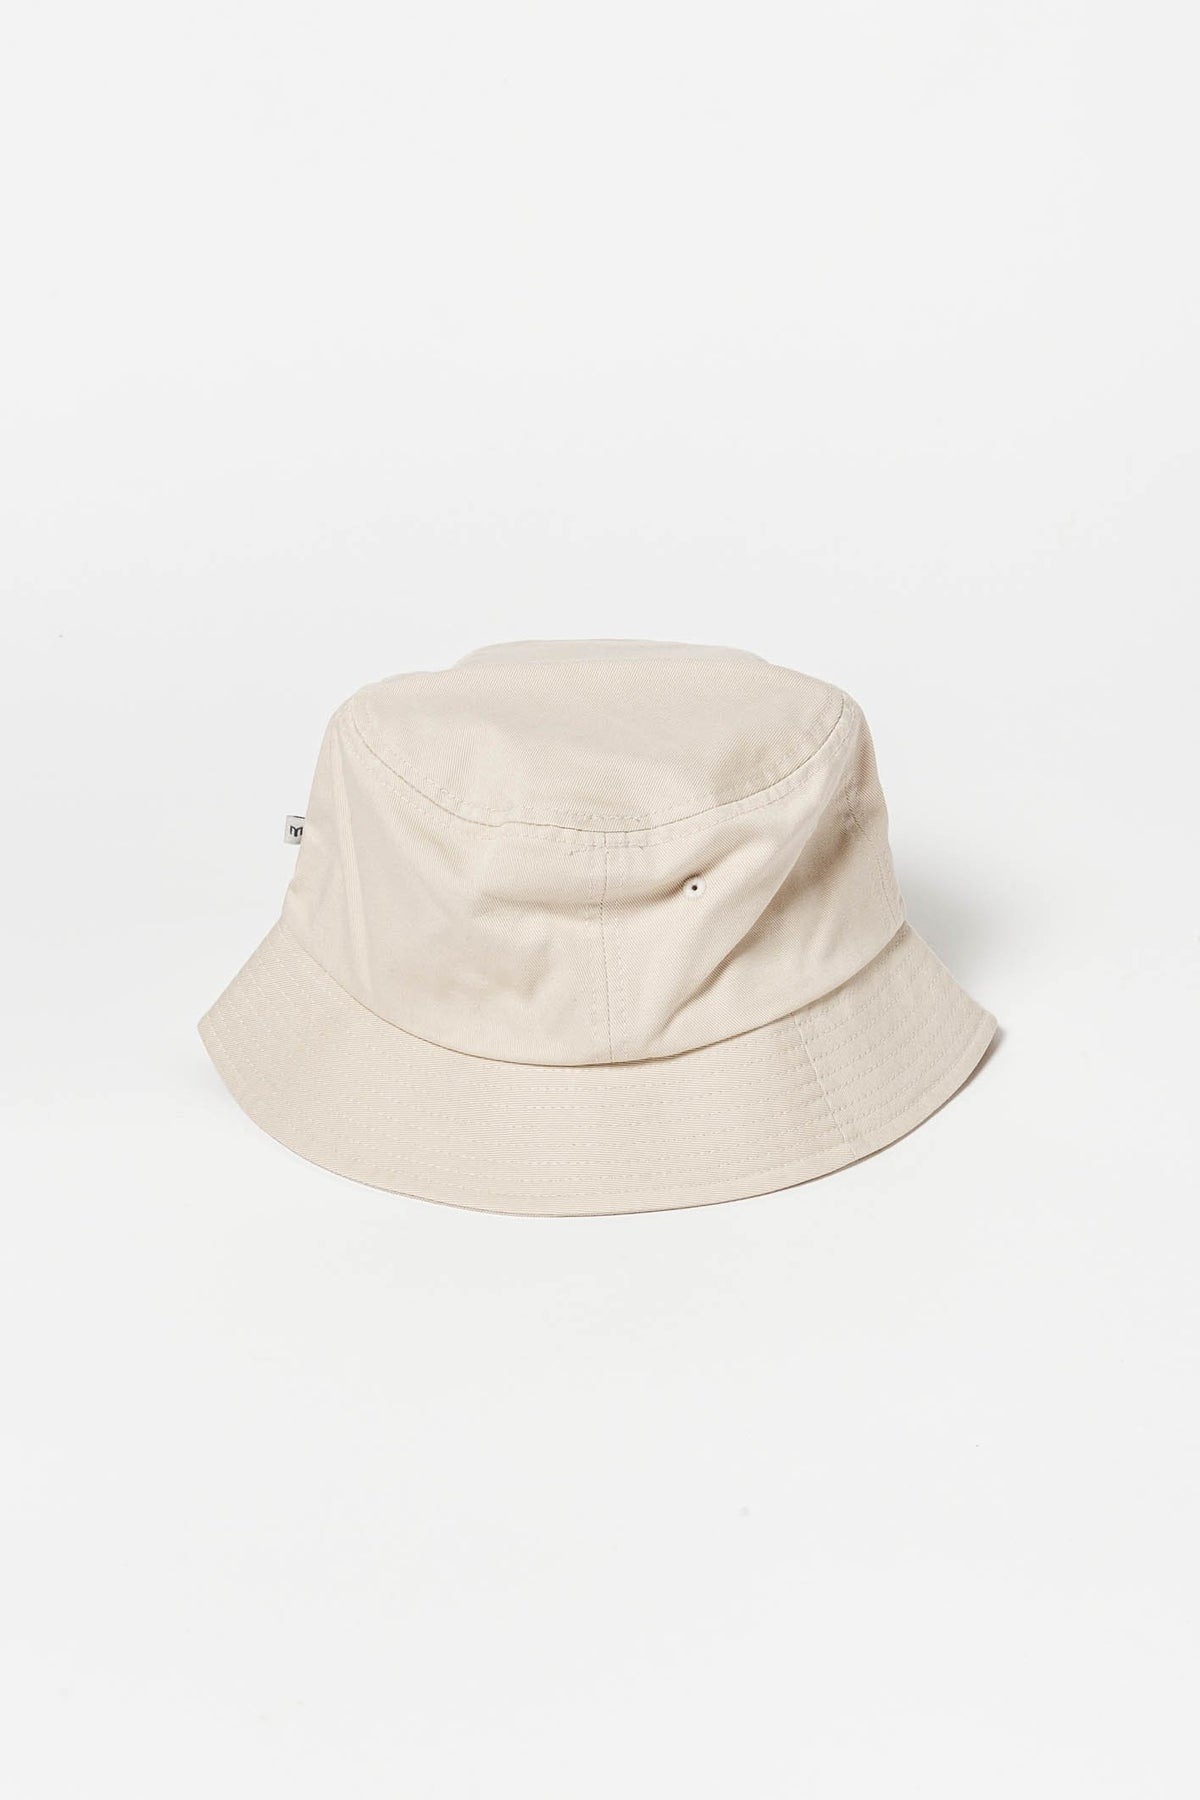 Buckina Hat Nomad - Minimum - beige nude bucket hat